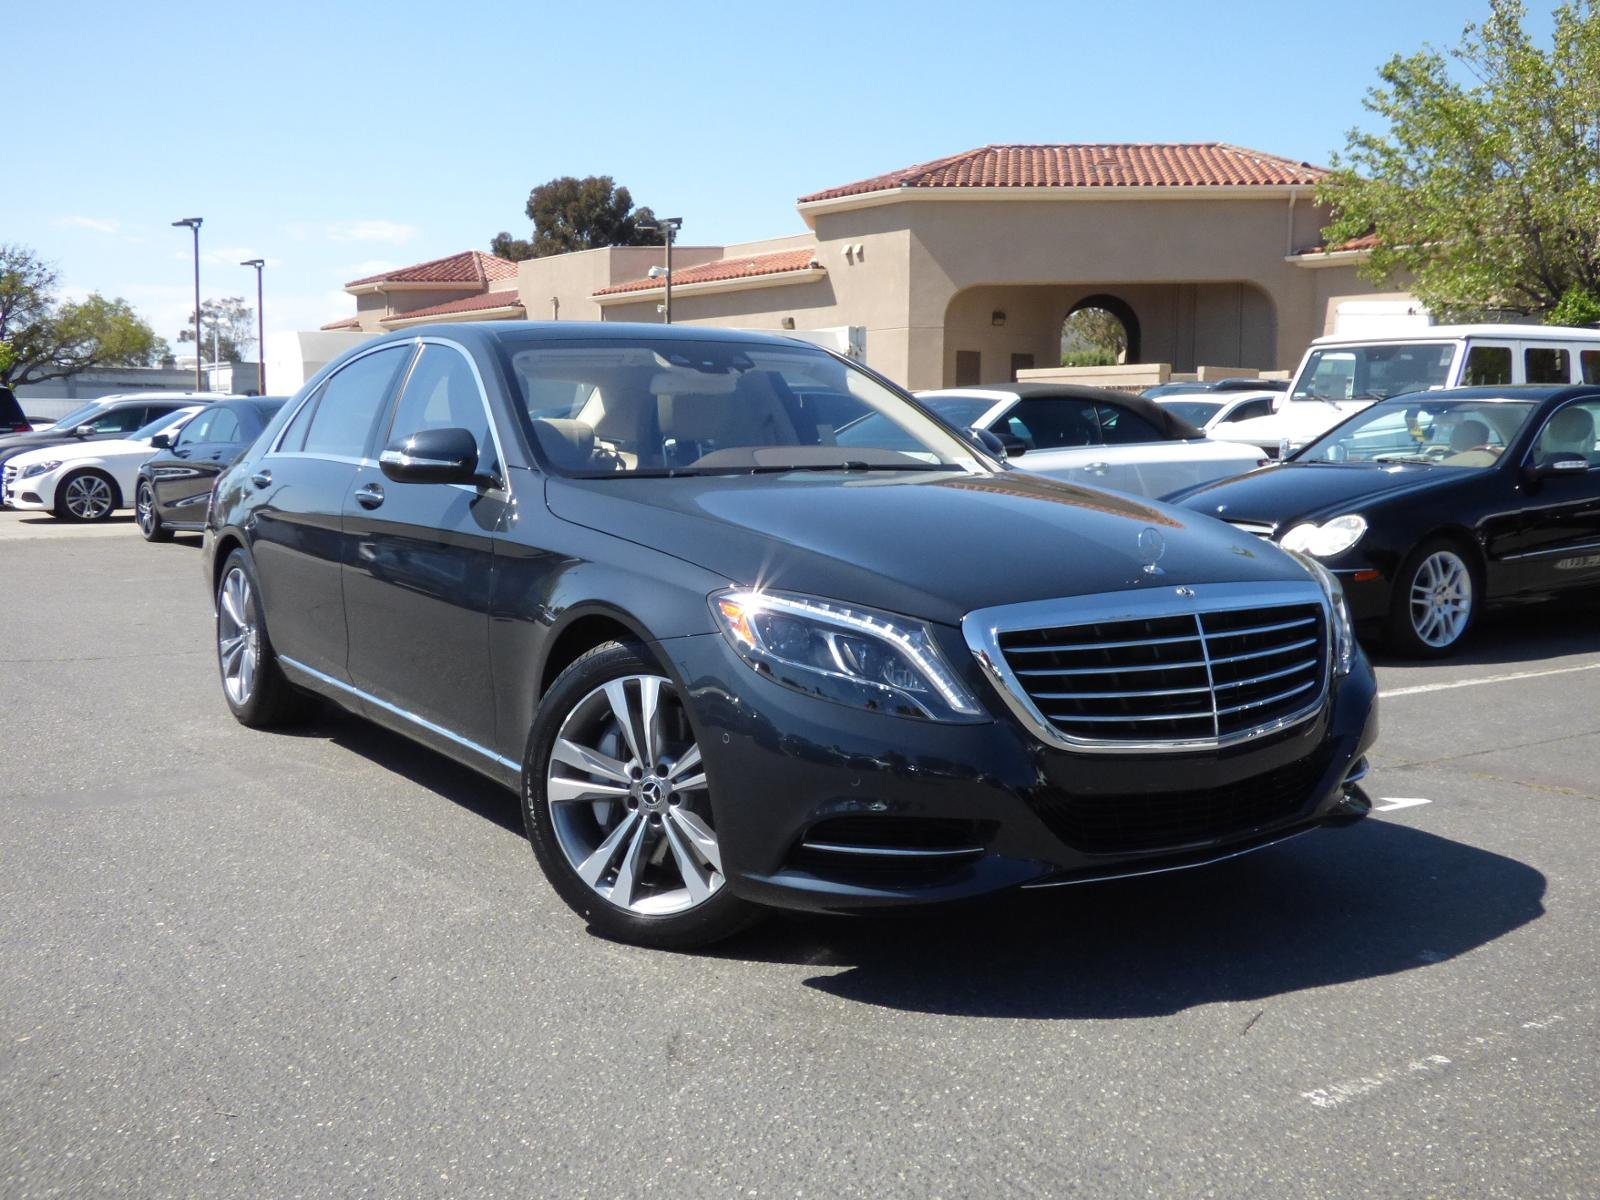 New 2017 Mercedes Benz S Class S 550 SEDAN in Thousand Oaks